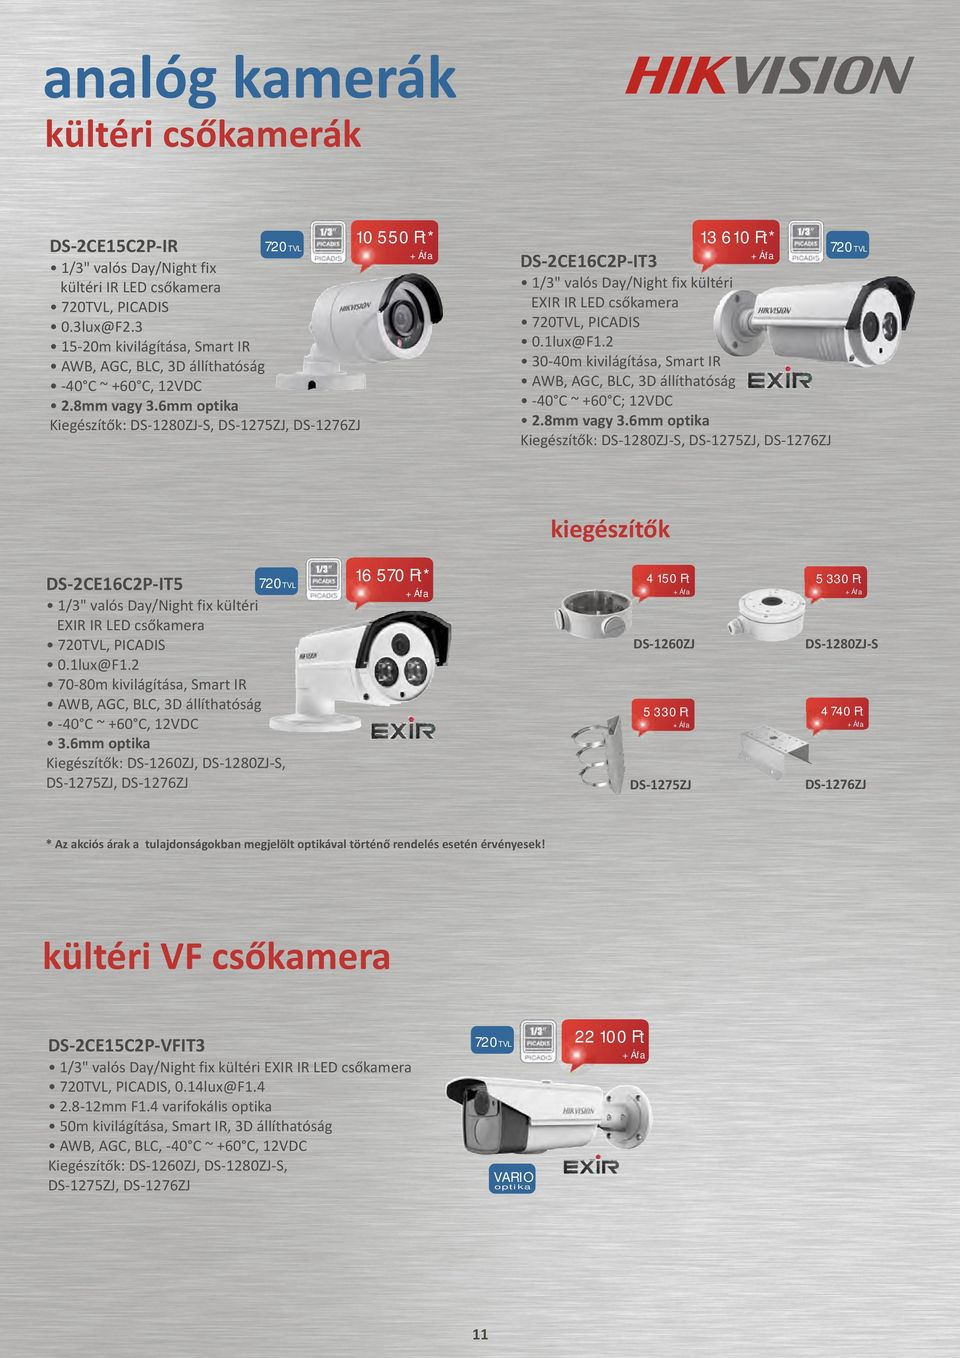 "6mm optika Kiegészítõk: DS-1280ZJ-S, 10 550 Ft* 13 610 Ft* DS-2CE16C2P-IT3 1/3"" valós Day/Night fix kültéri EXIR IR LED csõkamera 720TVL, PICADIS 0.1lux@F1."